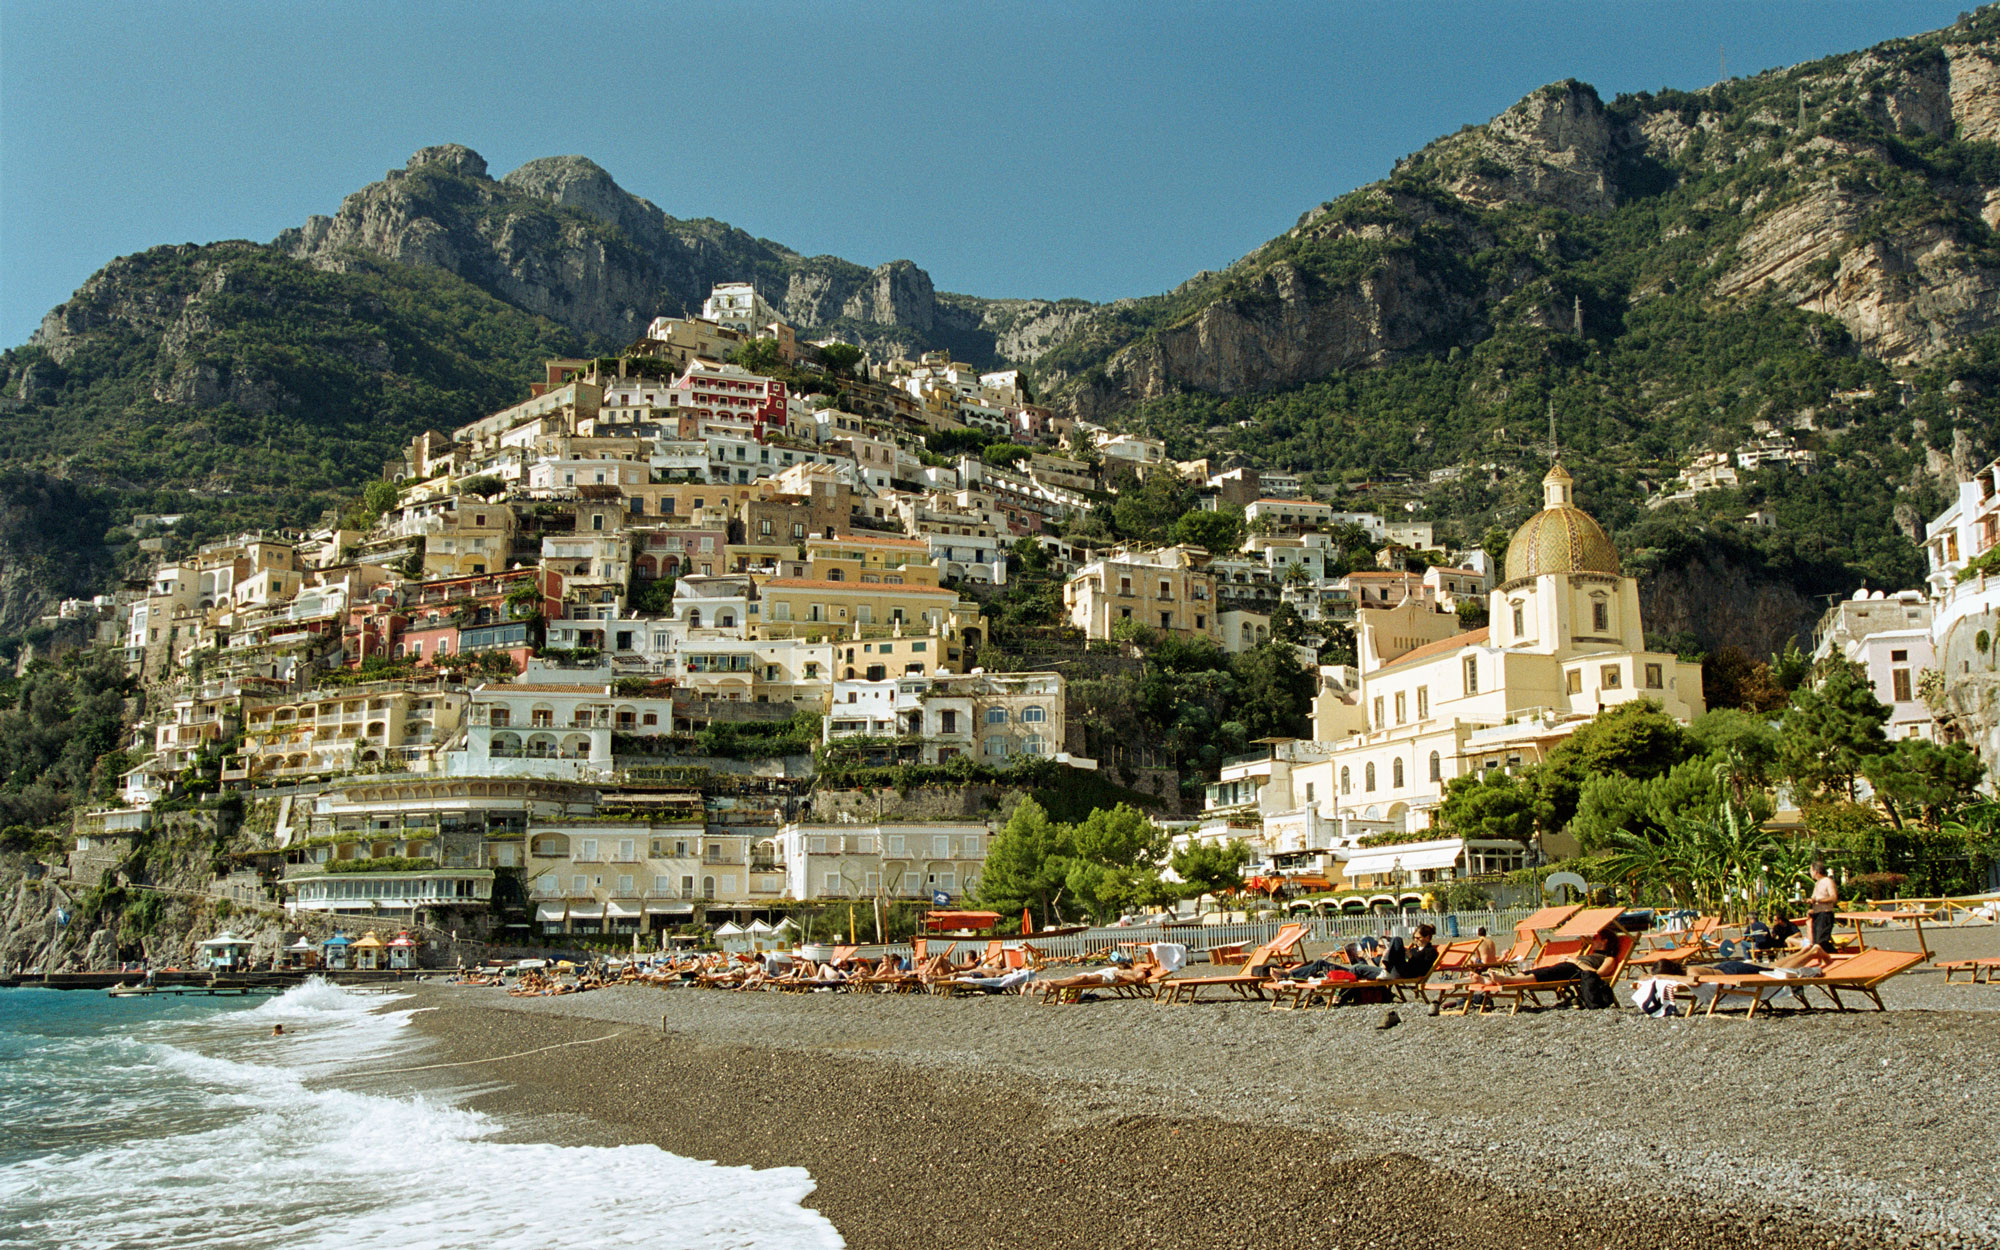 Positano Beach in Italy